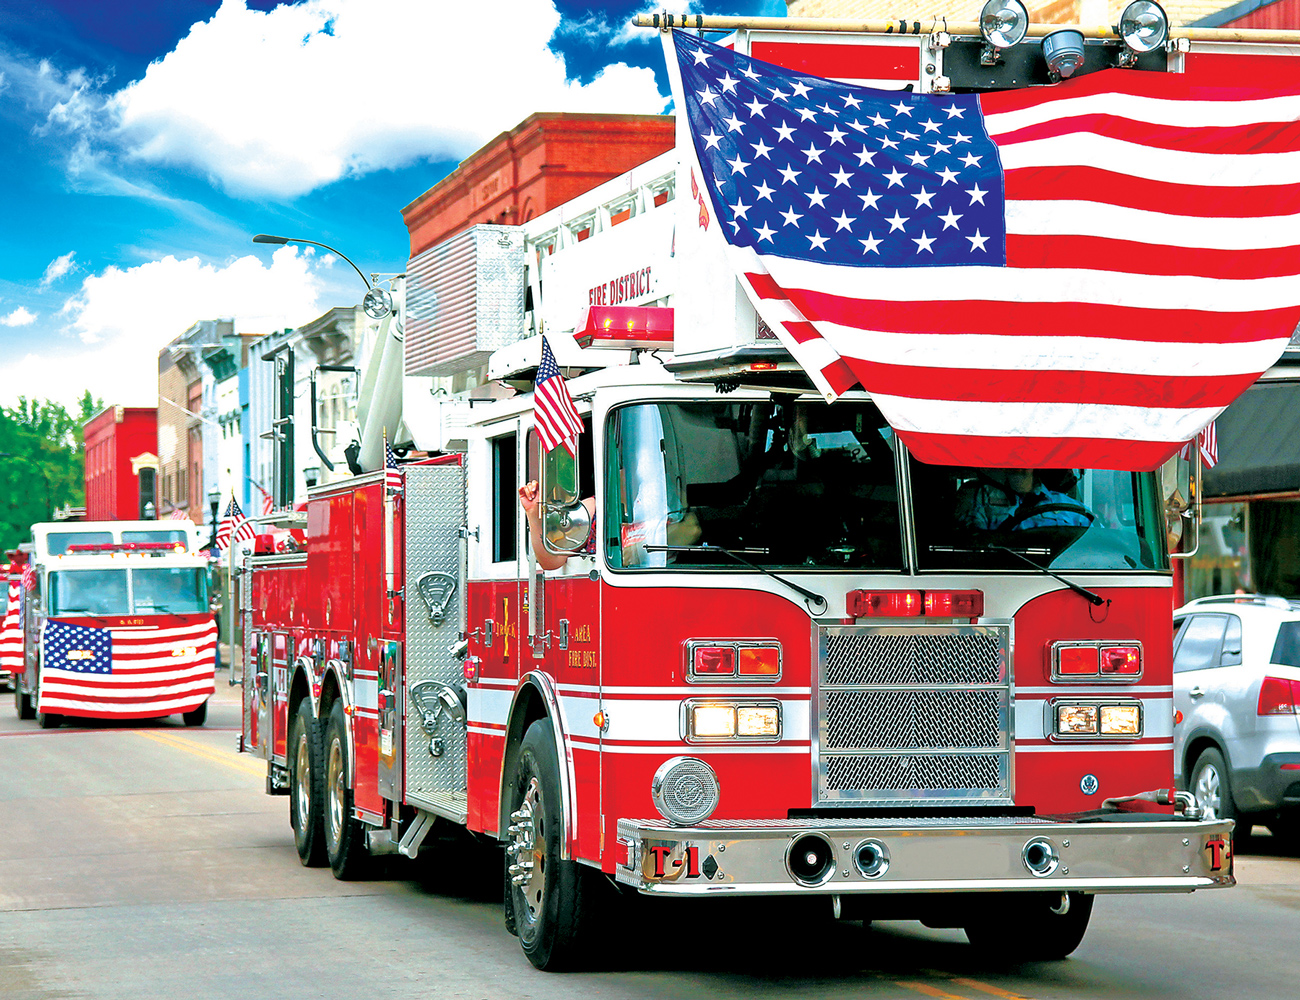 Fire Truck Parade Vehicles Jigsaw Puzzle